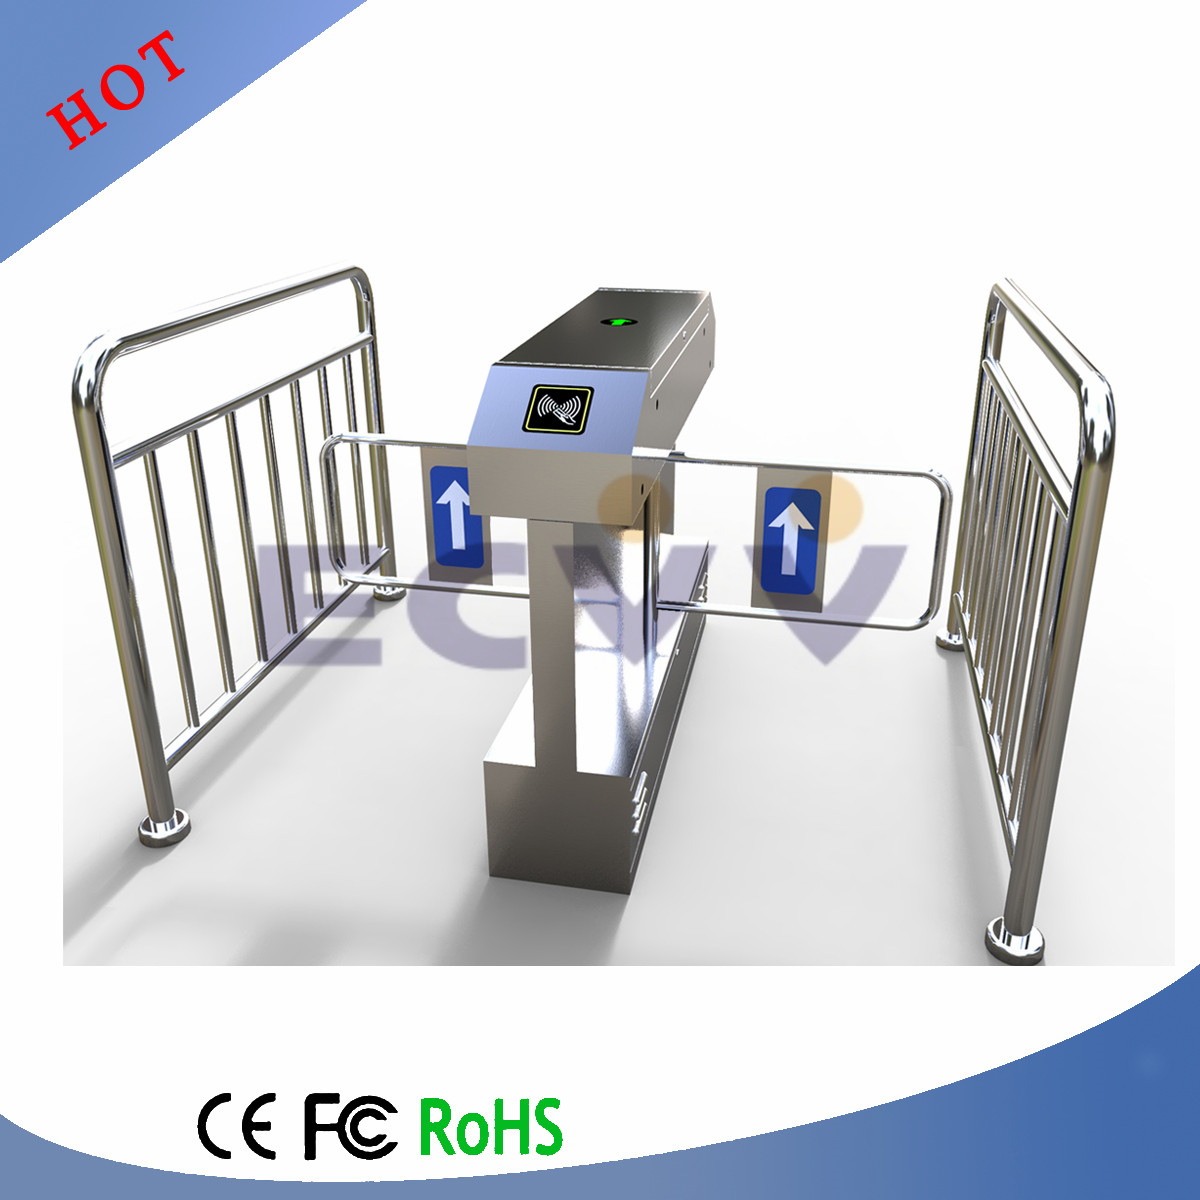 RFID/ID Automatic Door Security Access Control Swing Barrier Gate